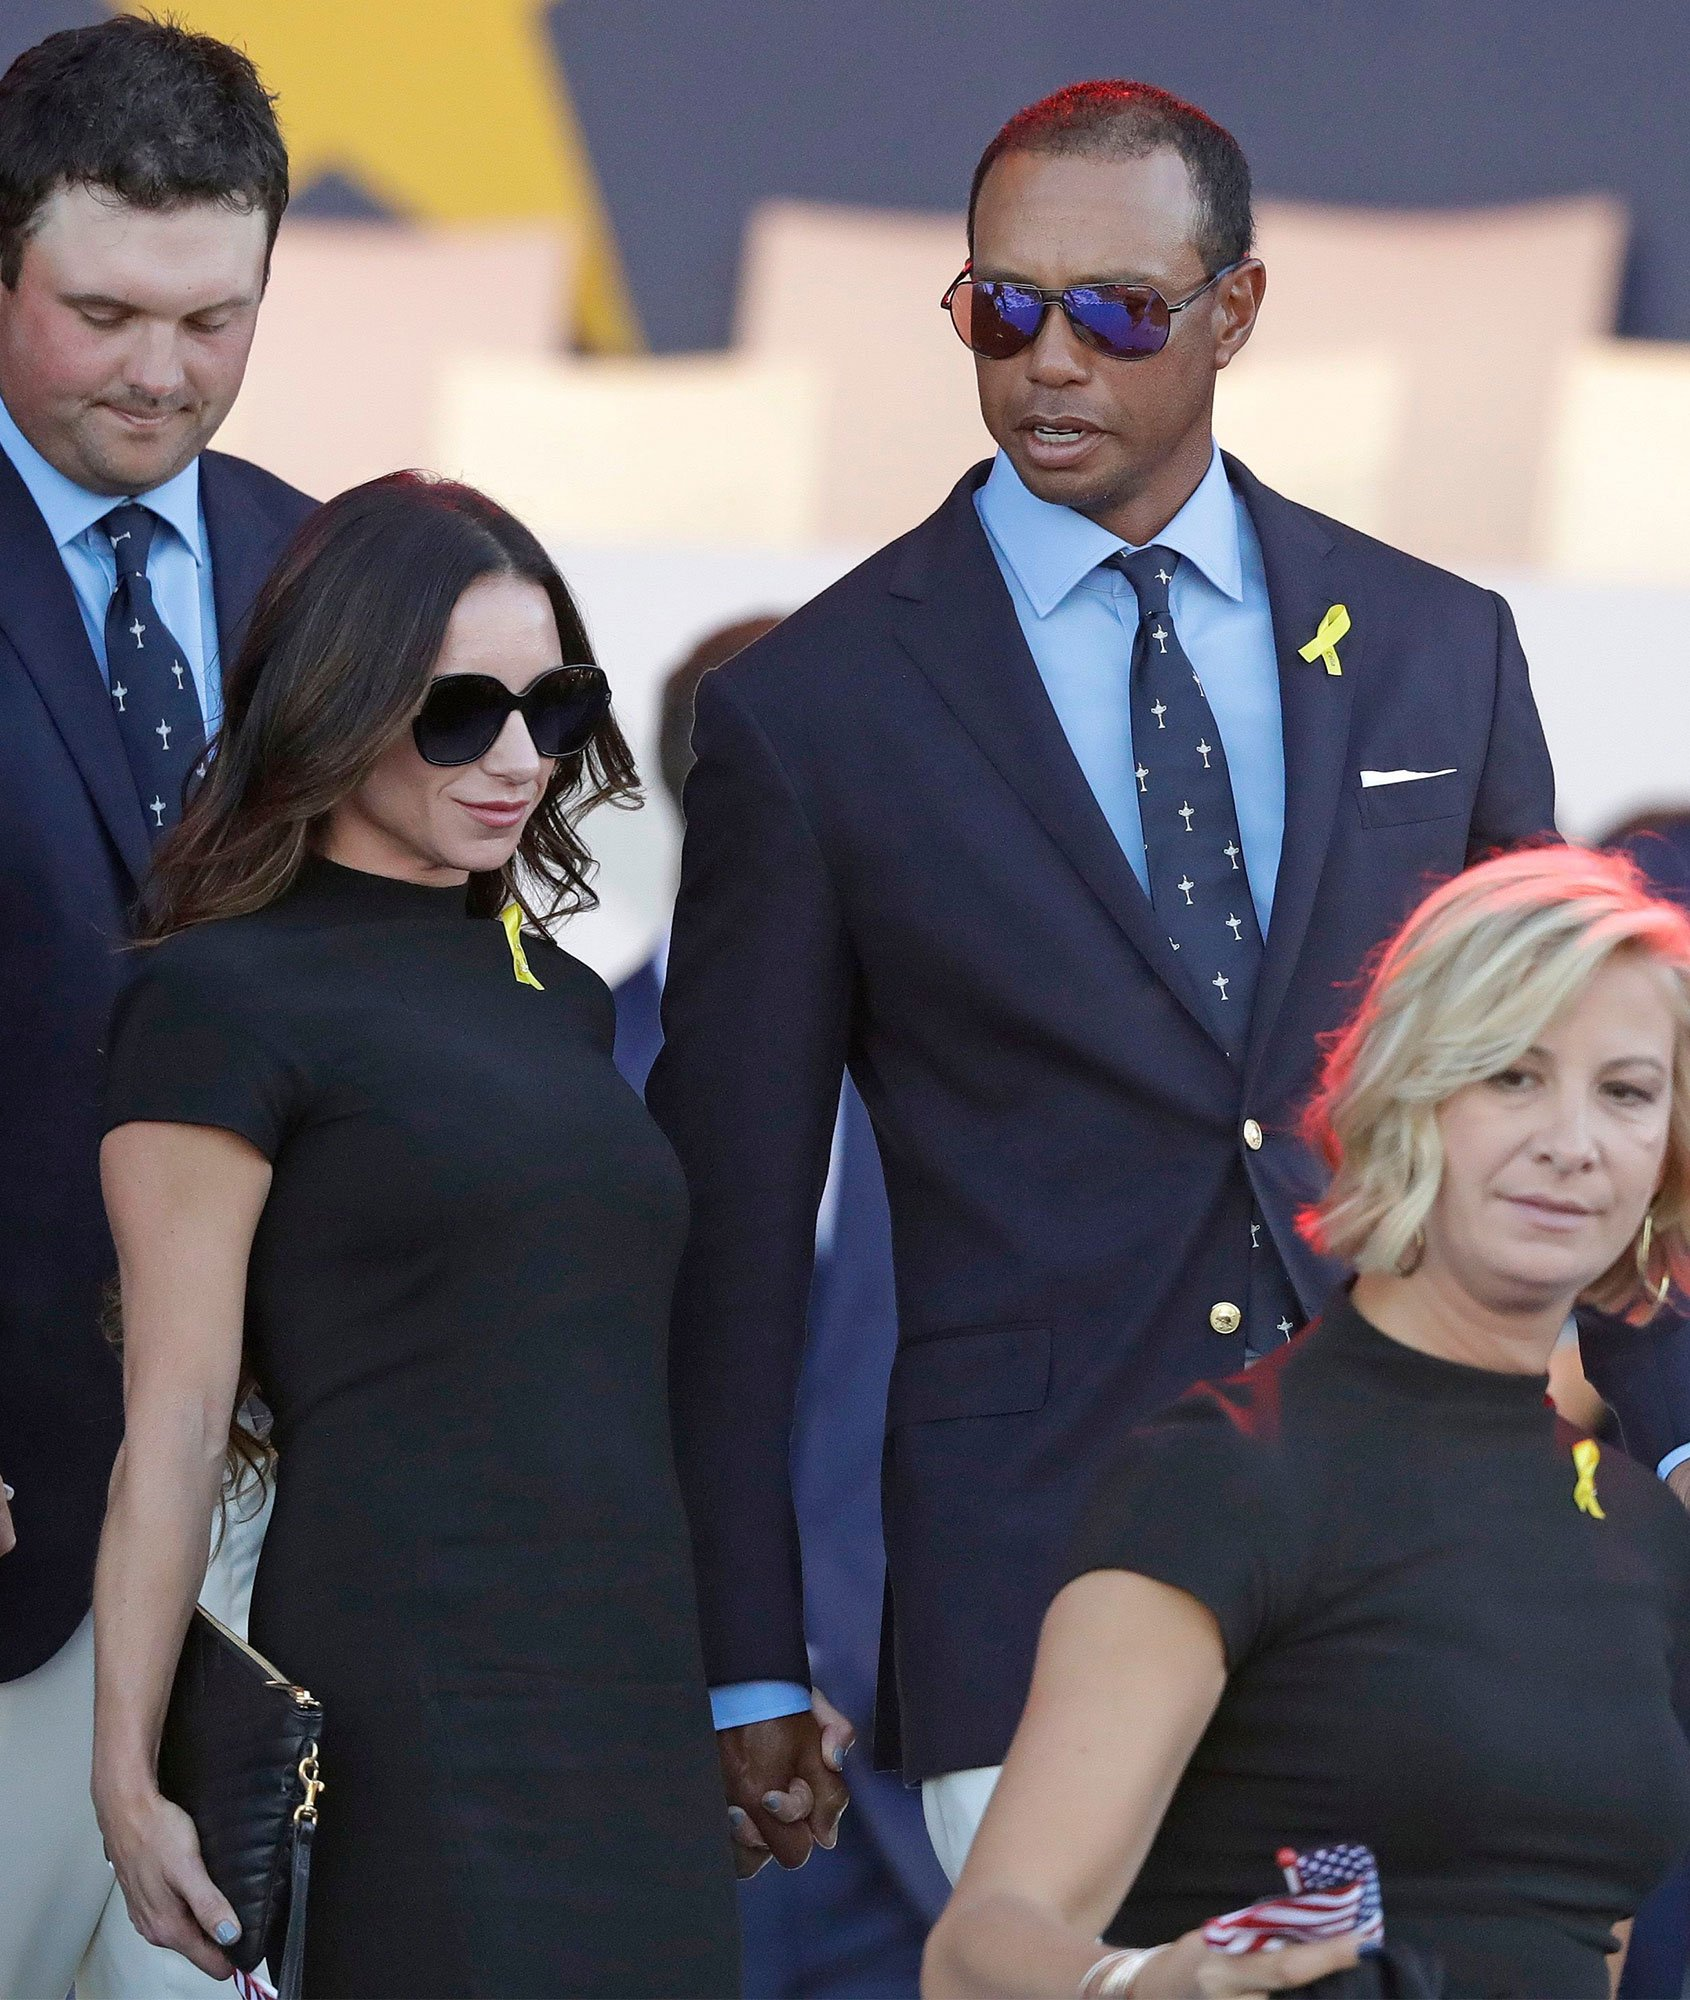 Tiger Woods and Girlfriend Erica Herman Walk Hand-in-Hand at 2018 Ryder ...